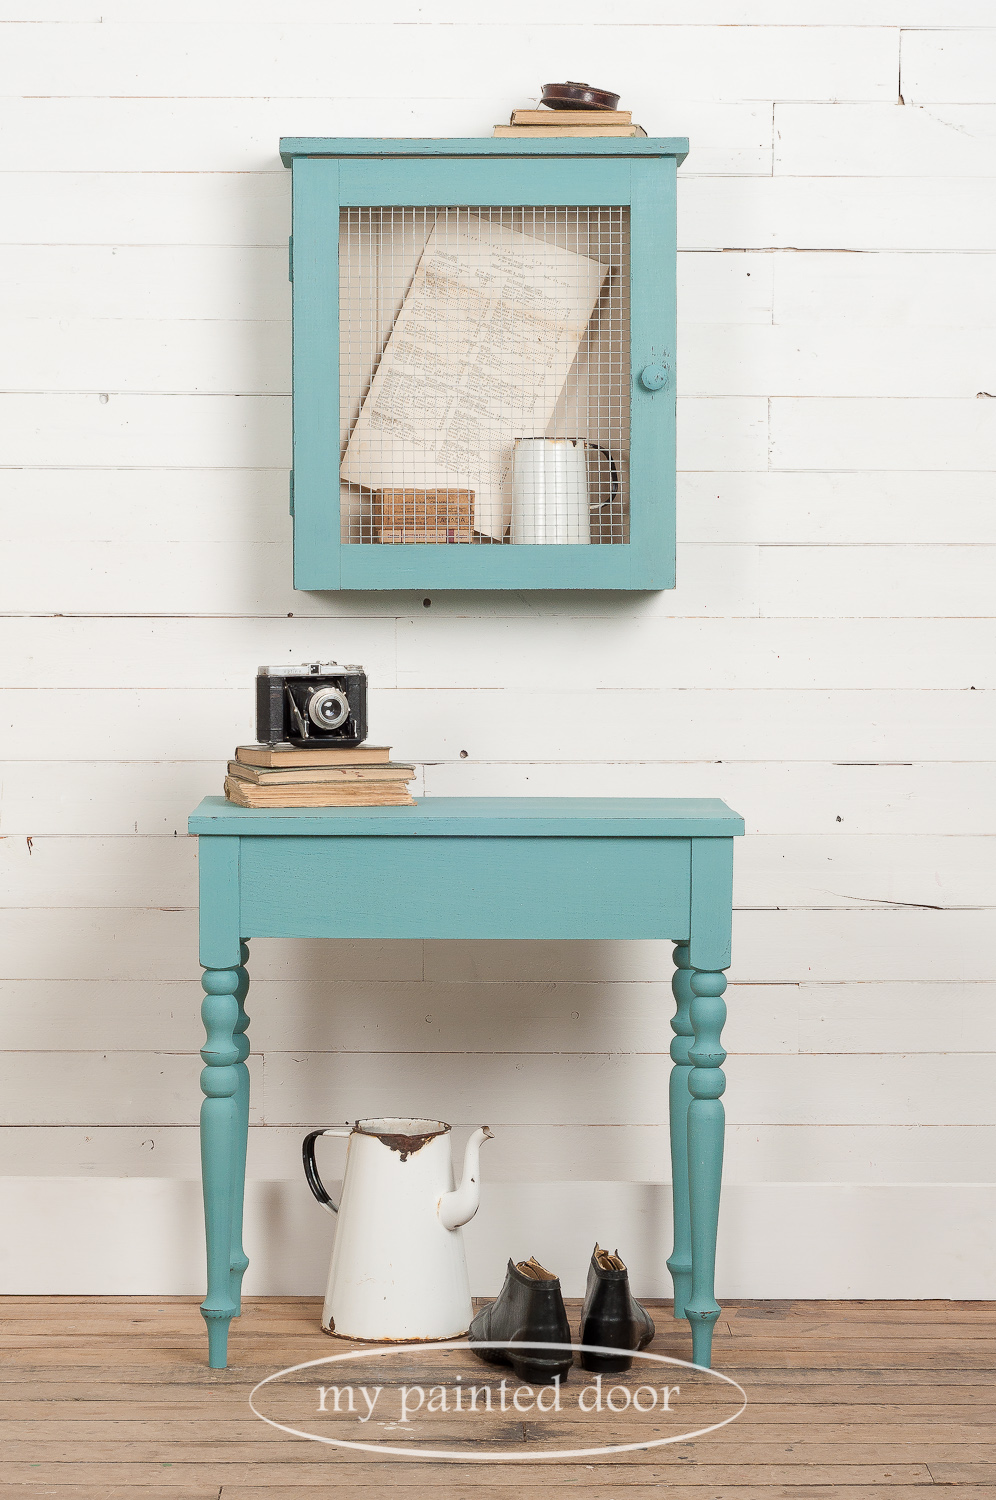 Learn how to paint furniture - Curiosity cabinet and accent table painted with Homestead House Milk Paint in the colours Niagara Green and Champlain.